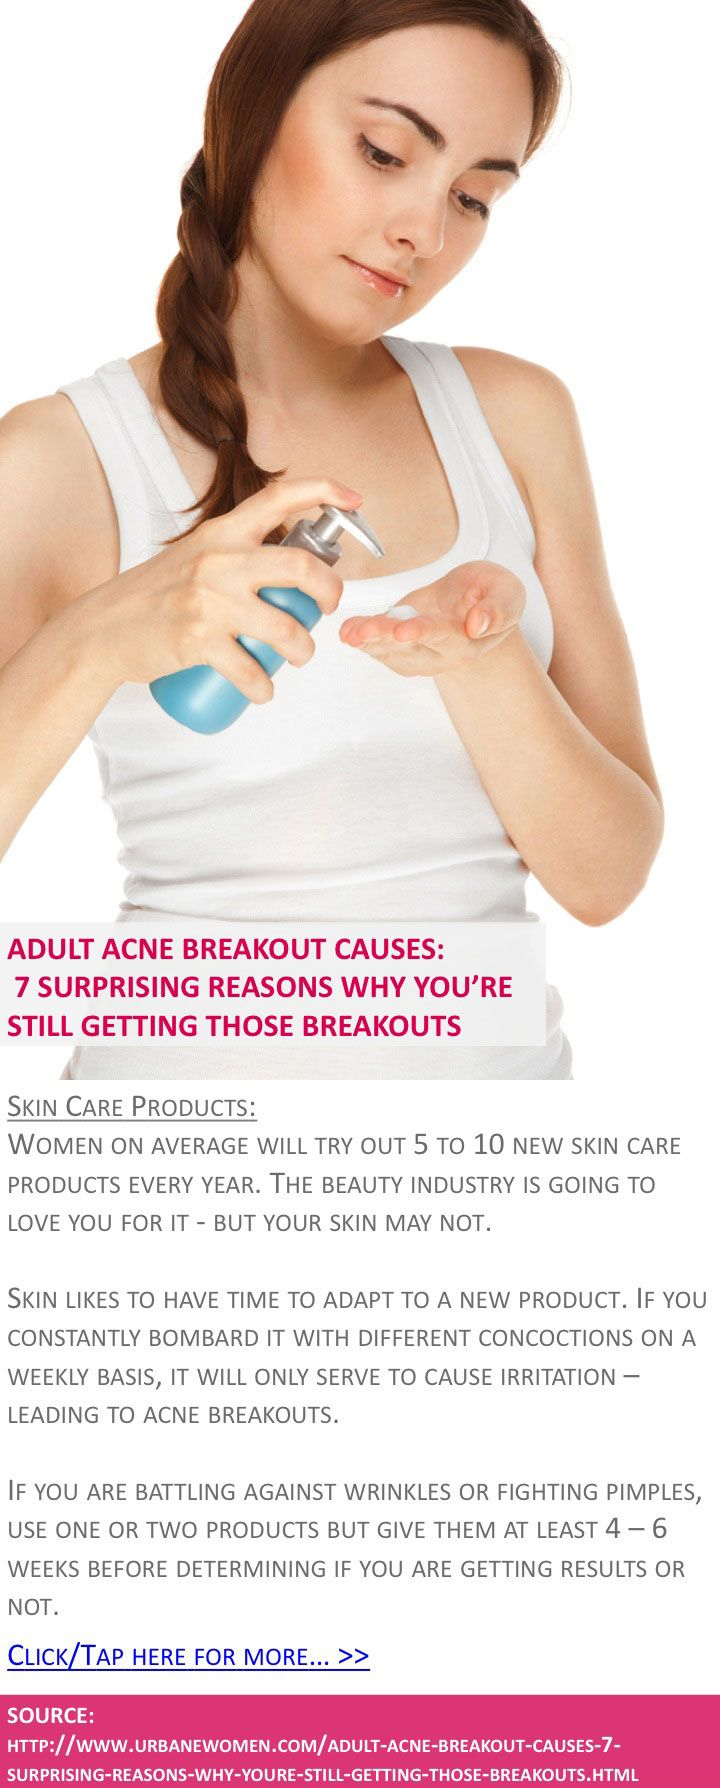 Adult acne breakout causes: 7 surprising reasons why you're STILL getting those breakouts - Skin care products - Click for more: http://www.urbanewomen.com/adult-acne-breakout-causes-7-surprising-reasons-why-youre-still-getting-those-breakouts.html